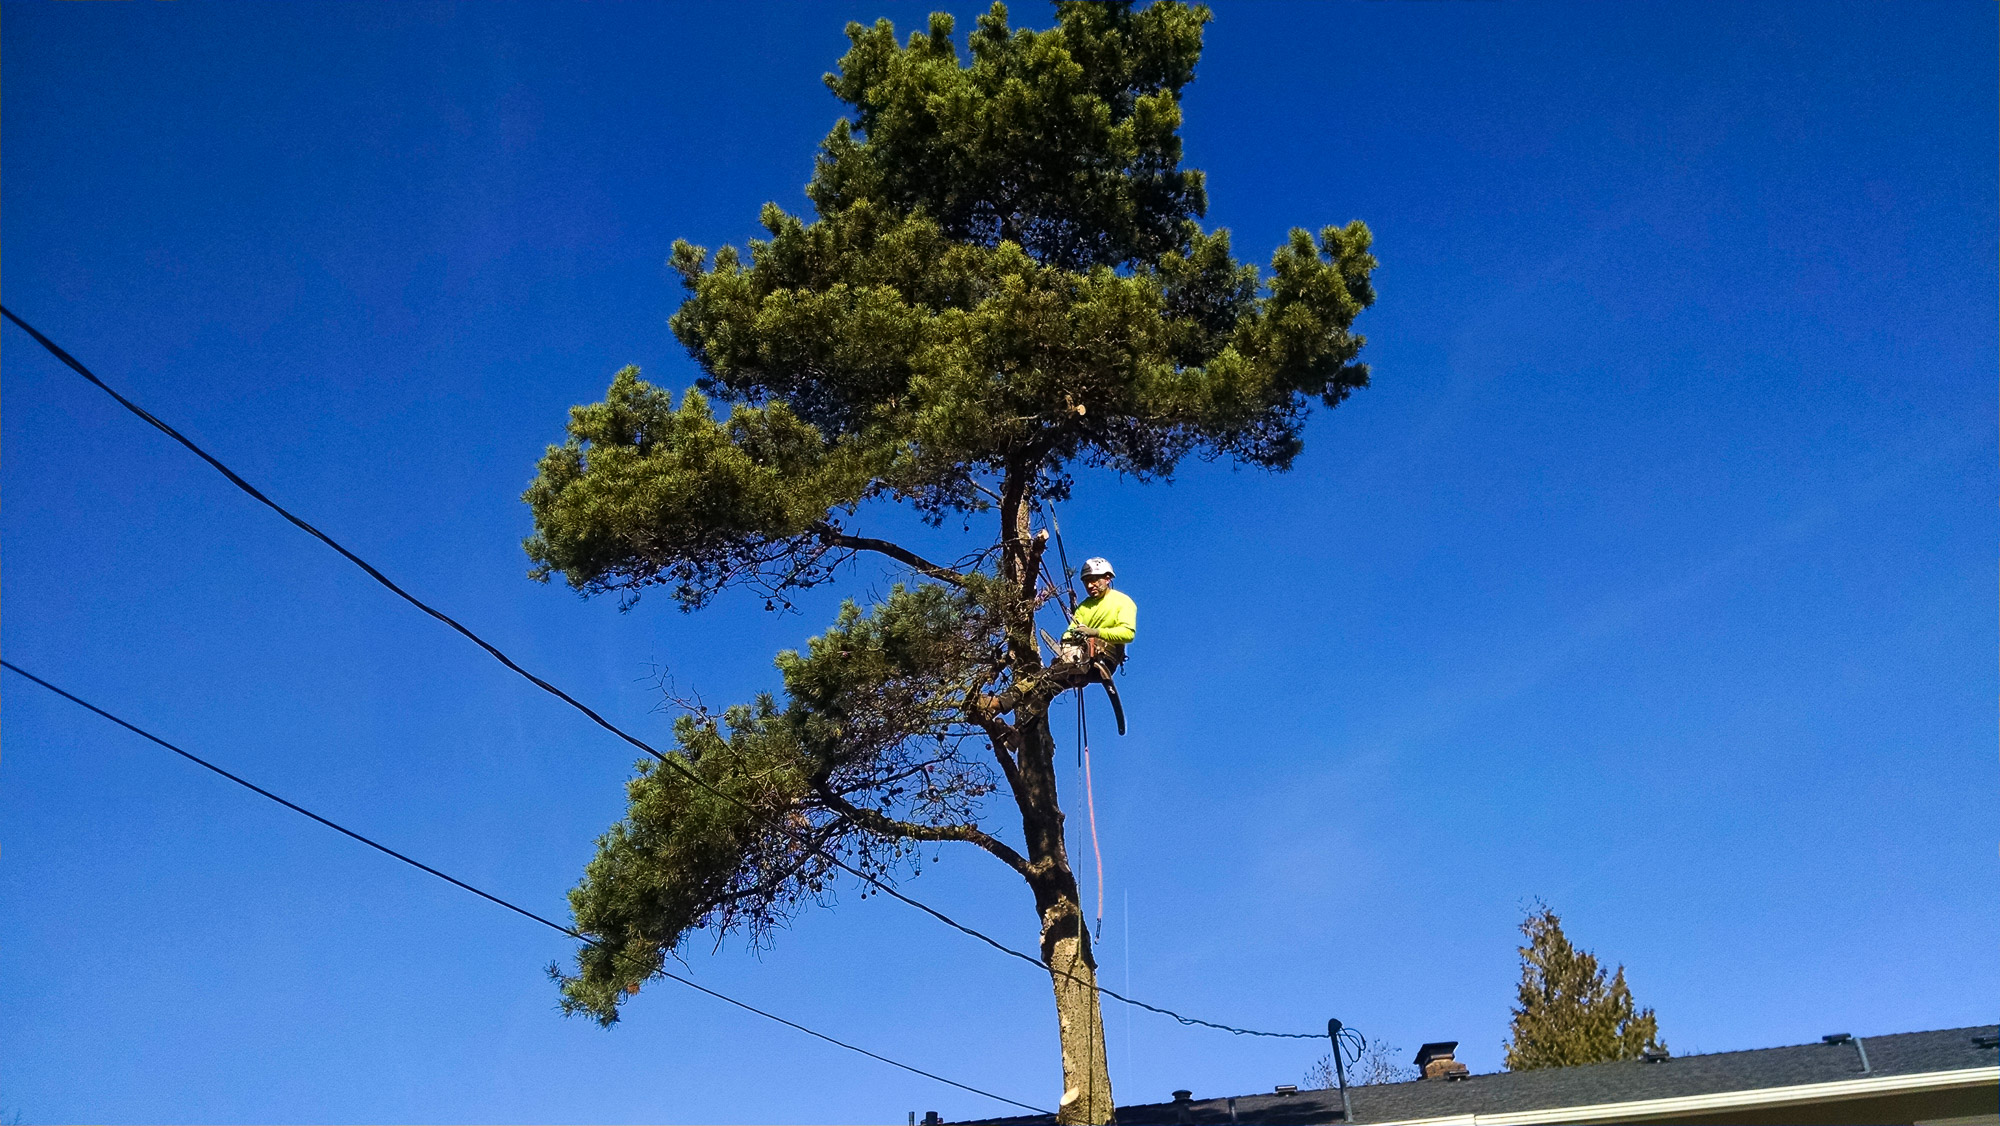 tree-service-removal-pruning-salem-oregon-631